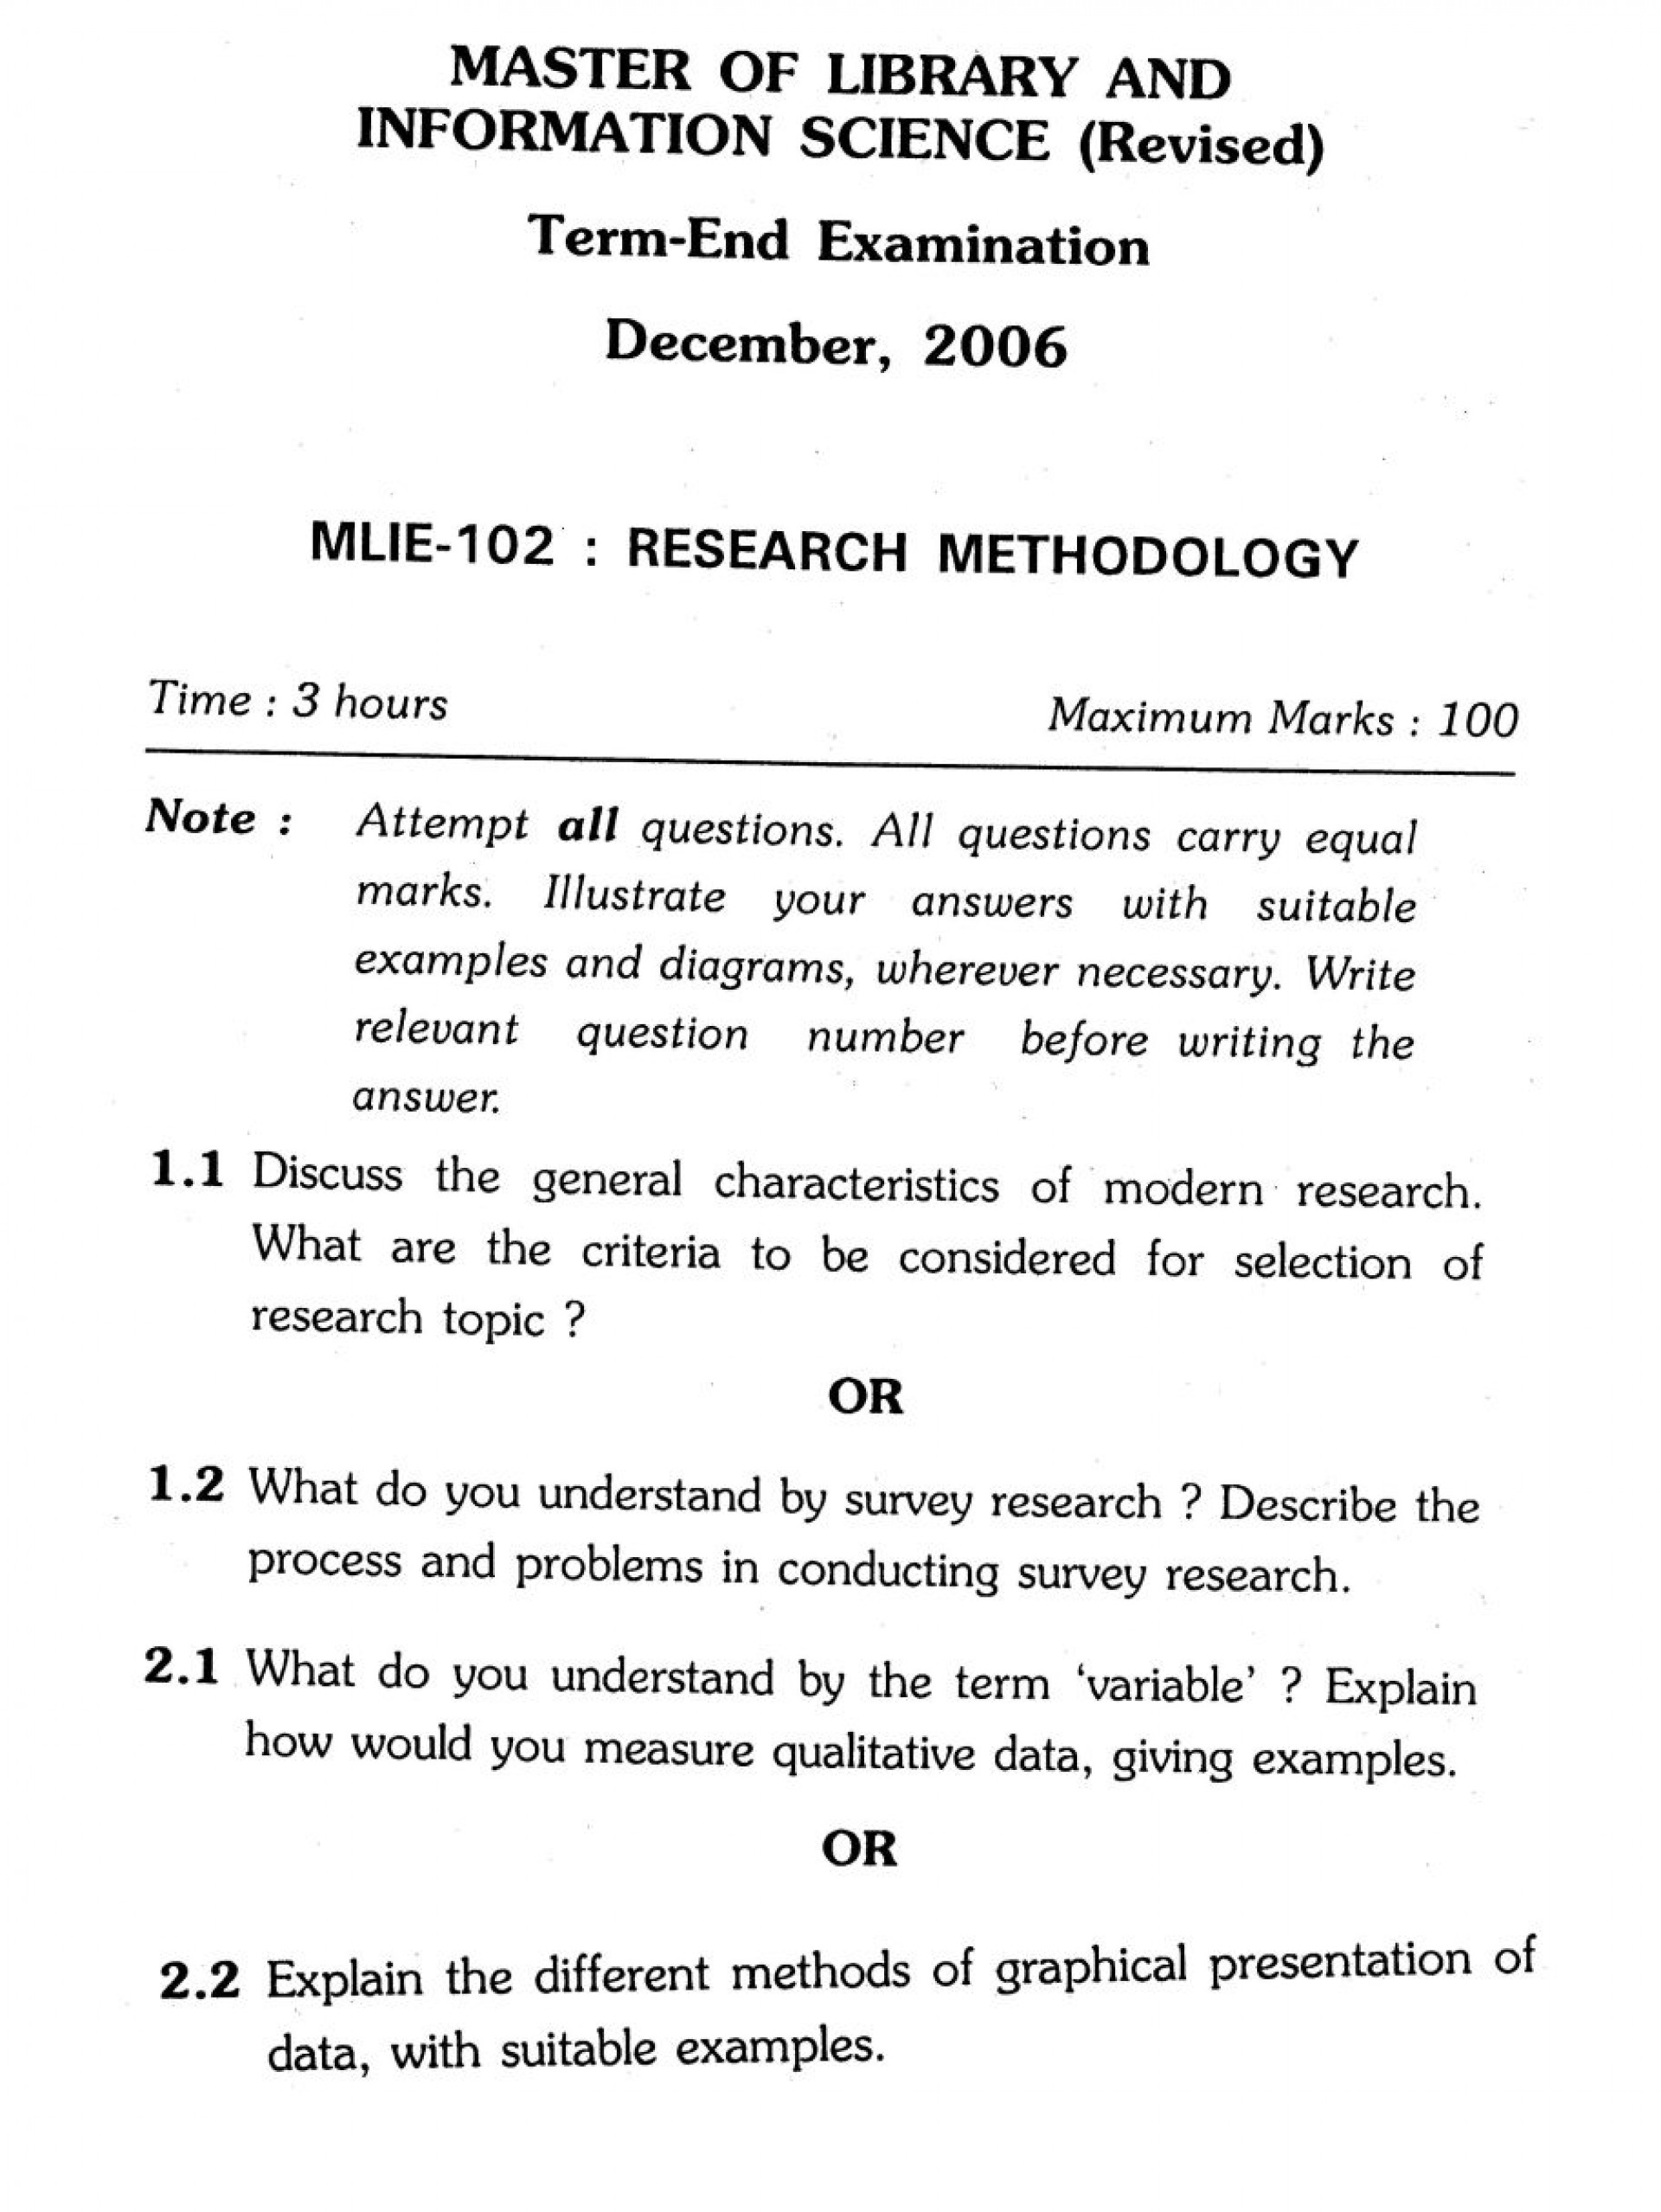 010 Methodology Research Paper Ignou Master Of Library And Information Science Previous Years Question Papers Remarkable Topics Pattern Exam Pdf 1920